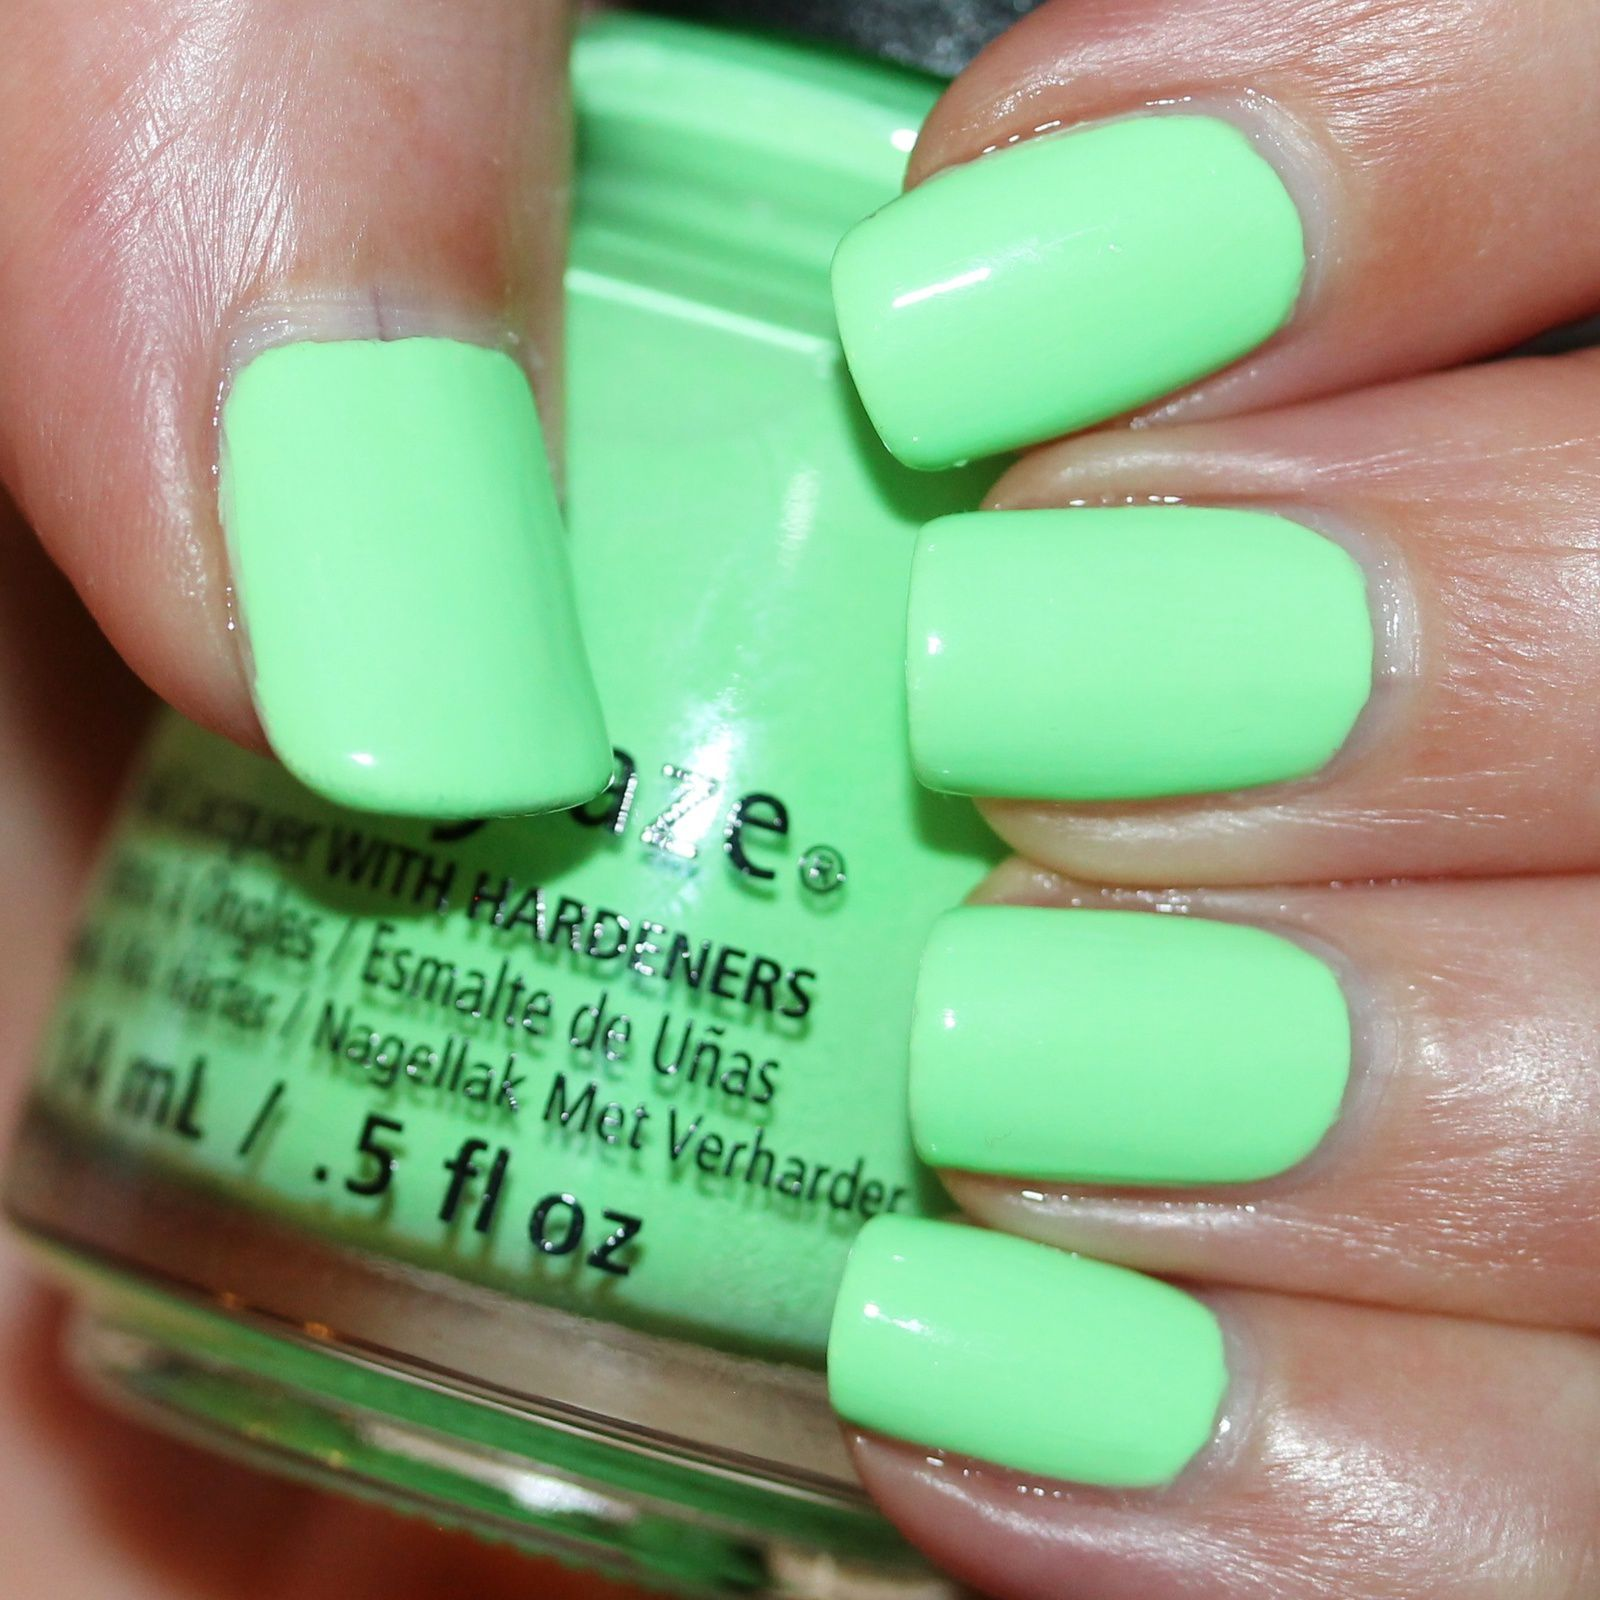 Mavala Base Coat Nail Shield 2-Phase Reinforcer and Protector / China Glaze Lime after Lime / HK Girl Top Coat